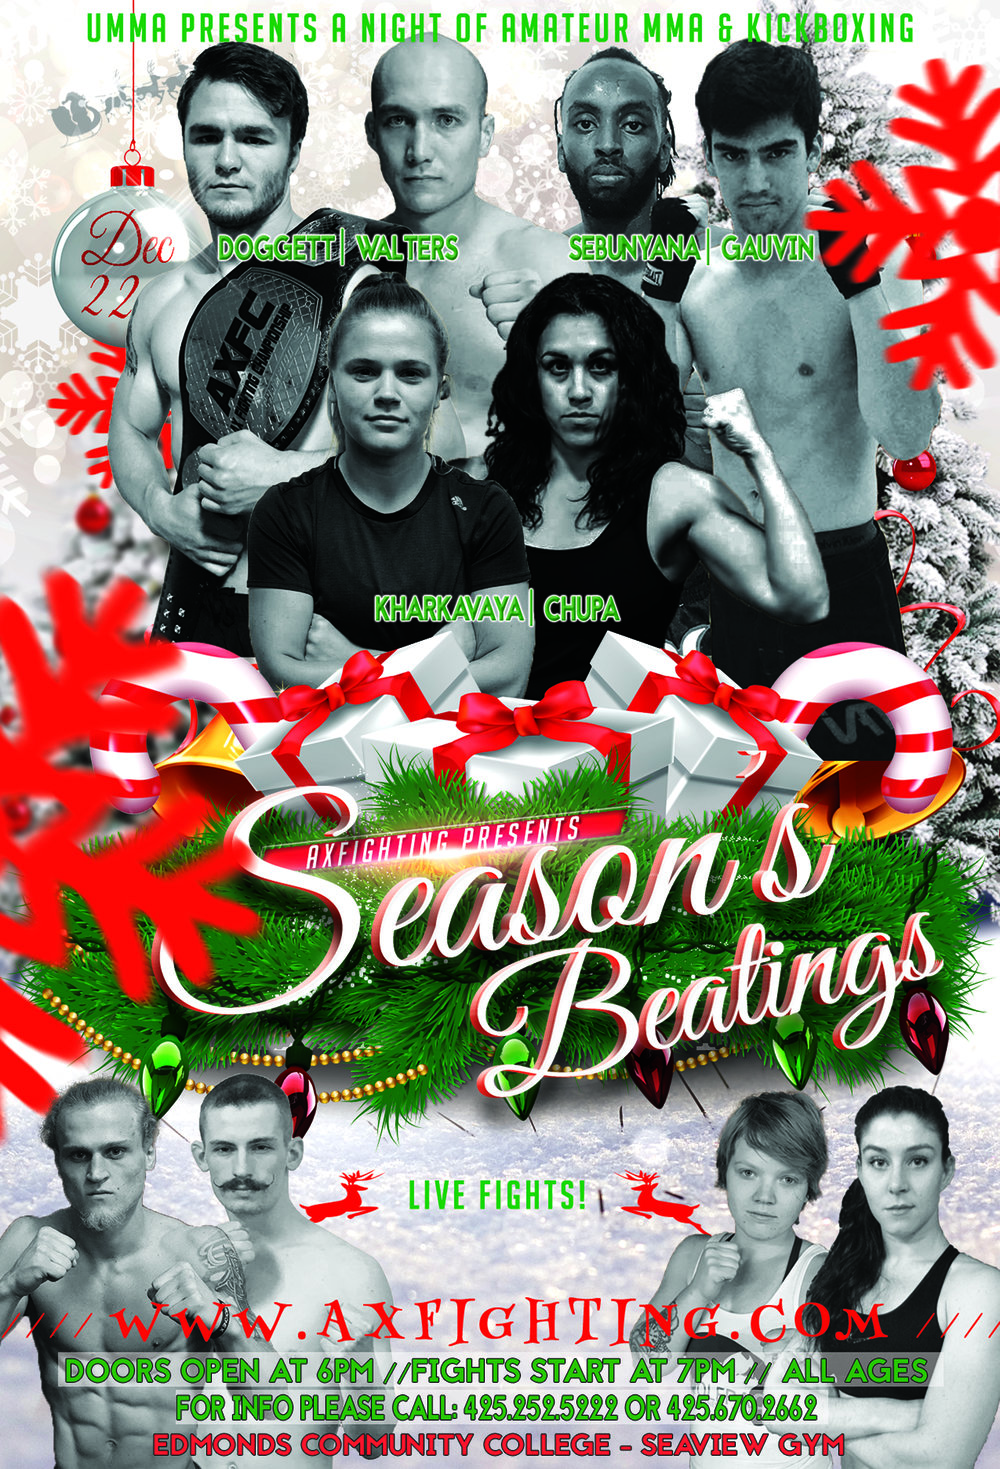 FINALSEASONSBEATINGS68MM.jpg